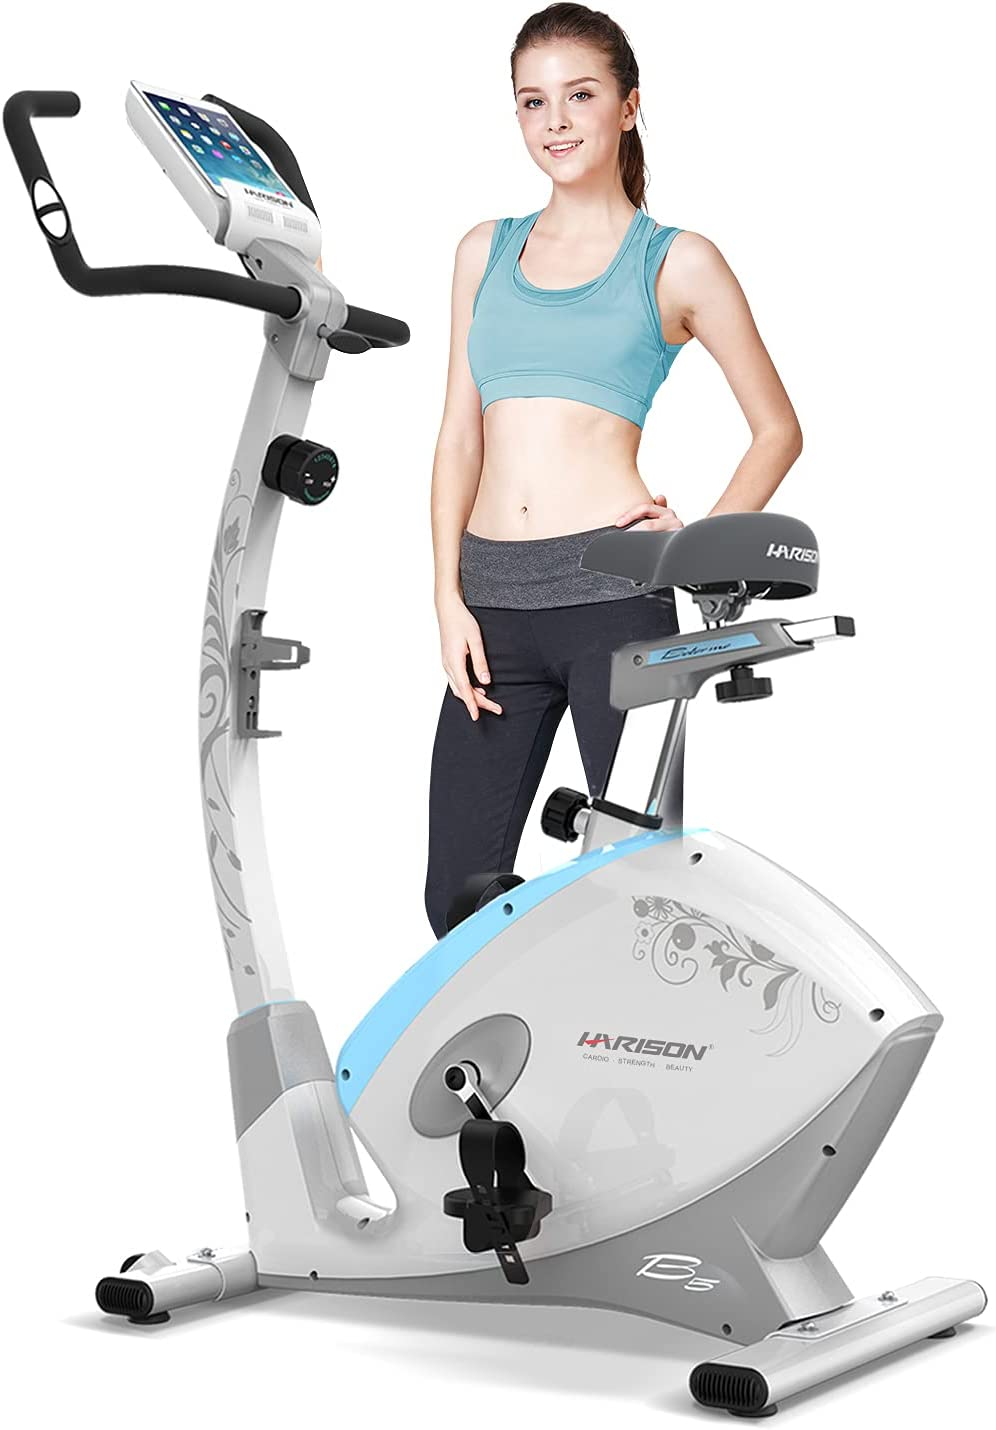 Credence HARISON Magnetic Stationary Upright Exercise Resista 8 with Mail order cheap Bike